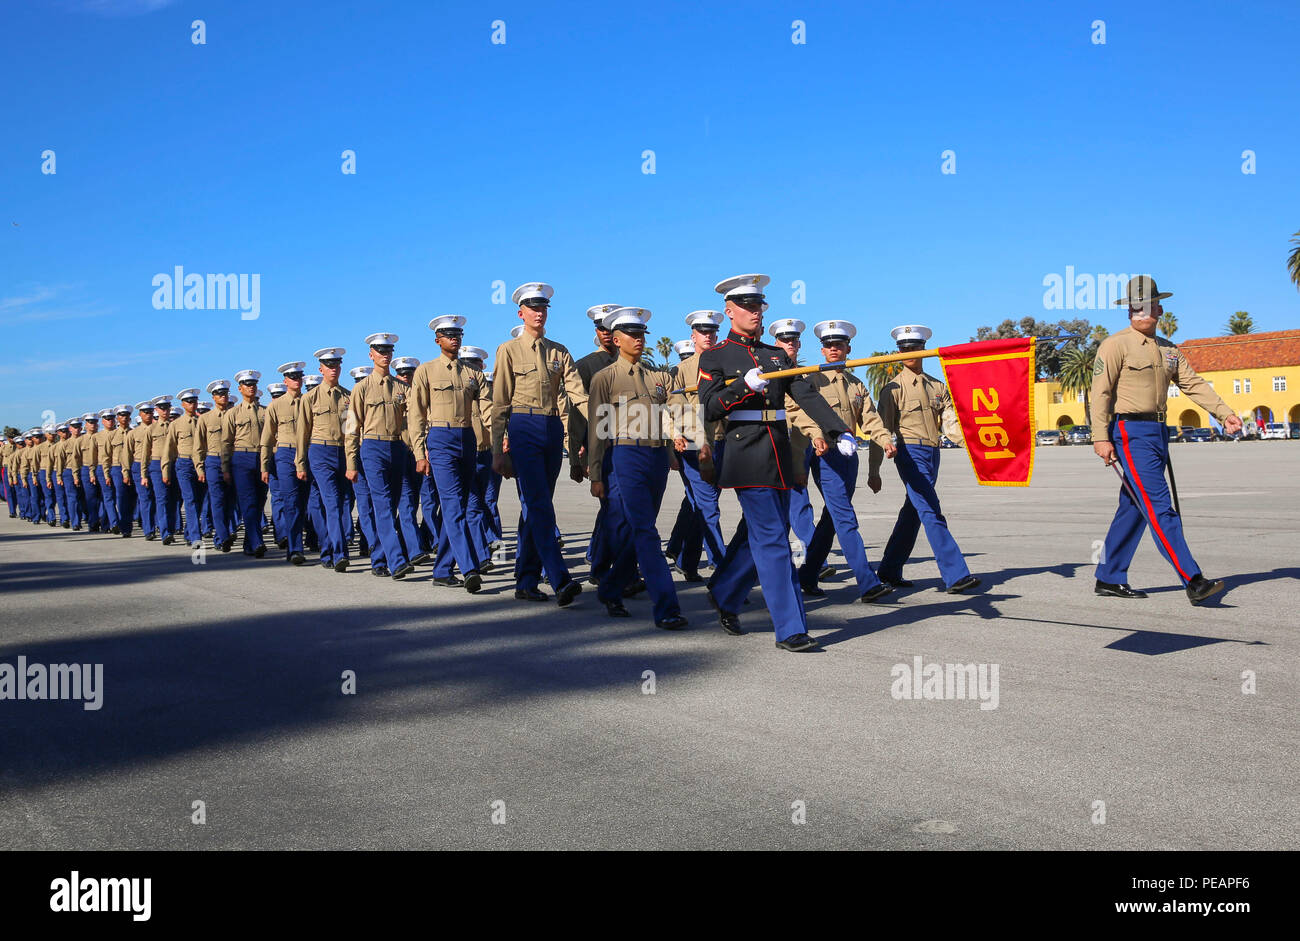 Marines From Hotel Company 2nd Recruit Training Battalion March Across The Parade Deck During A Graduation Ceremony At Marine Corps Recruit Depot San Diego Nov 20 Graduation Comes After The Completion Of